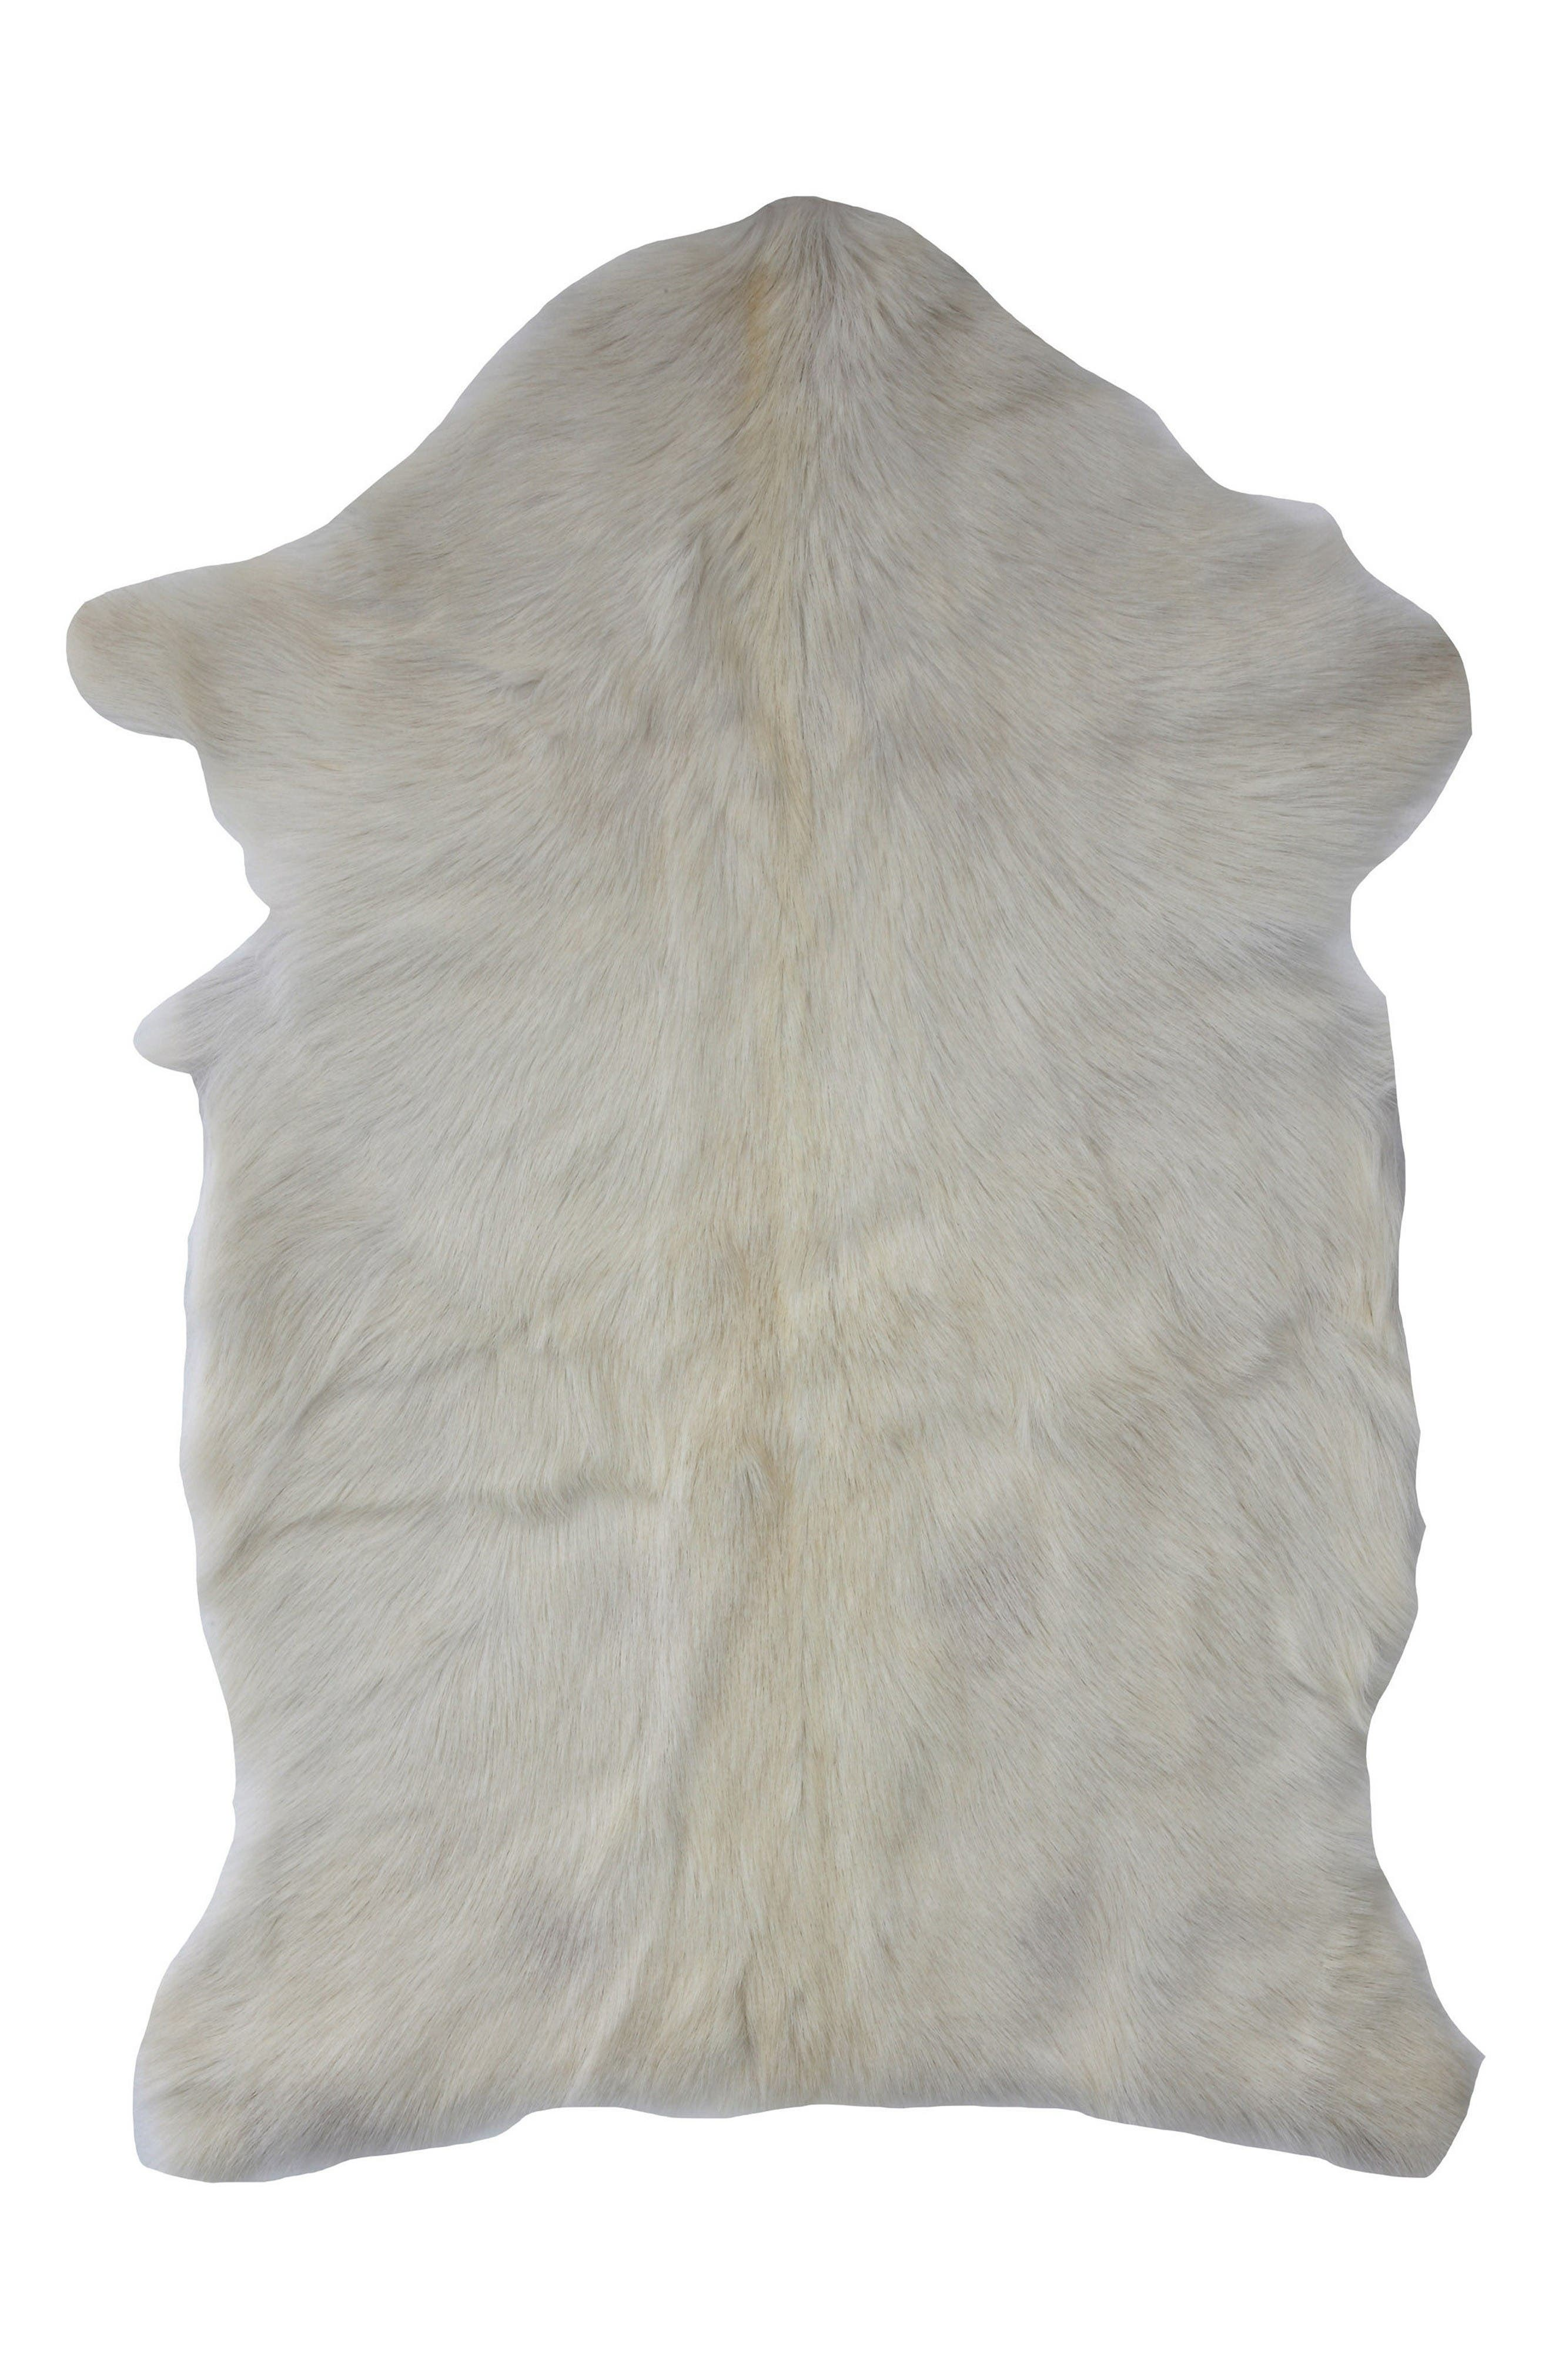 Main Image - Creative Co-Op Genuine Goat Hair Rug